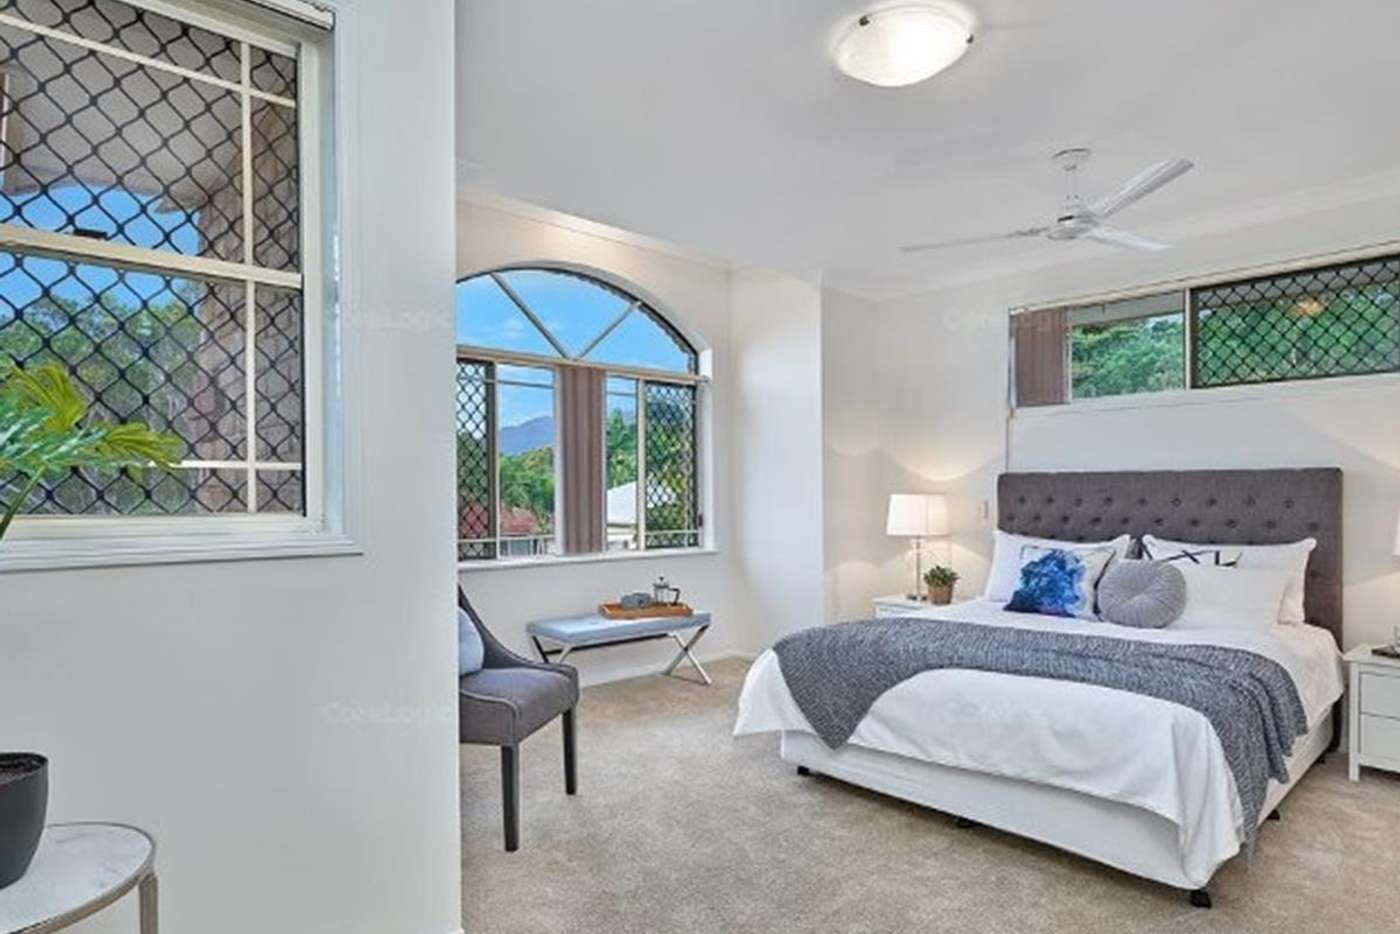 Seventh view of Homely house listing, 10 Obersky Cl, Brinsmead QLD 4870